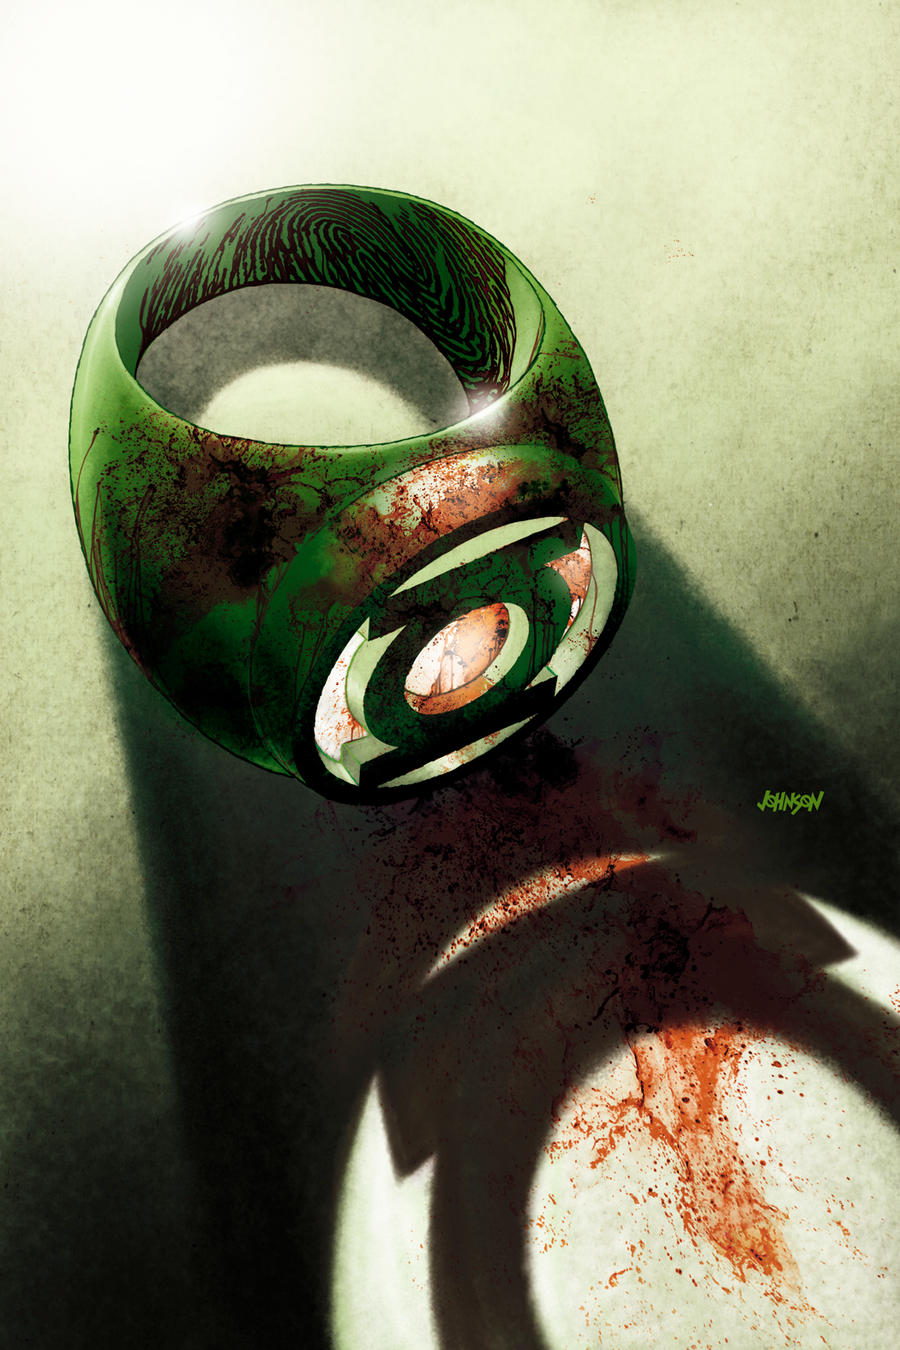 Green lantern ring comic - photo#4